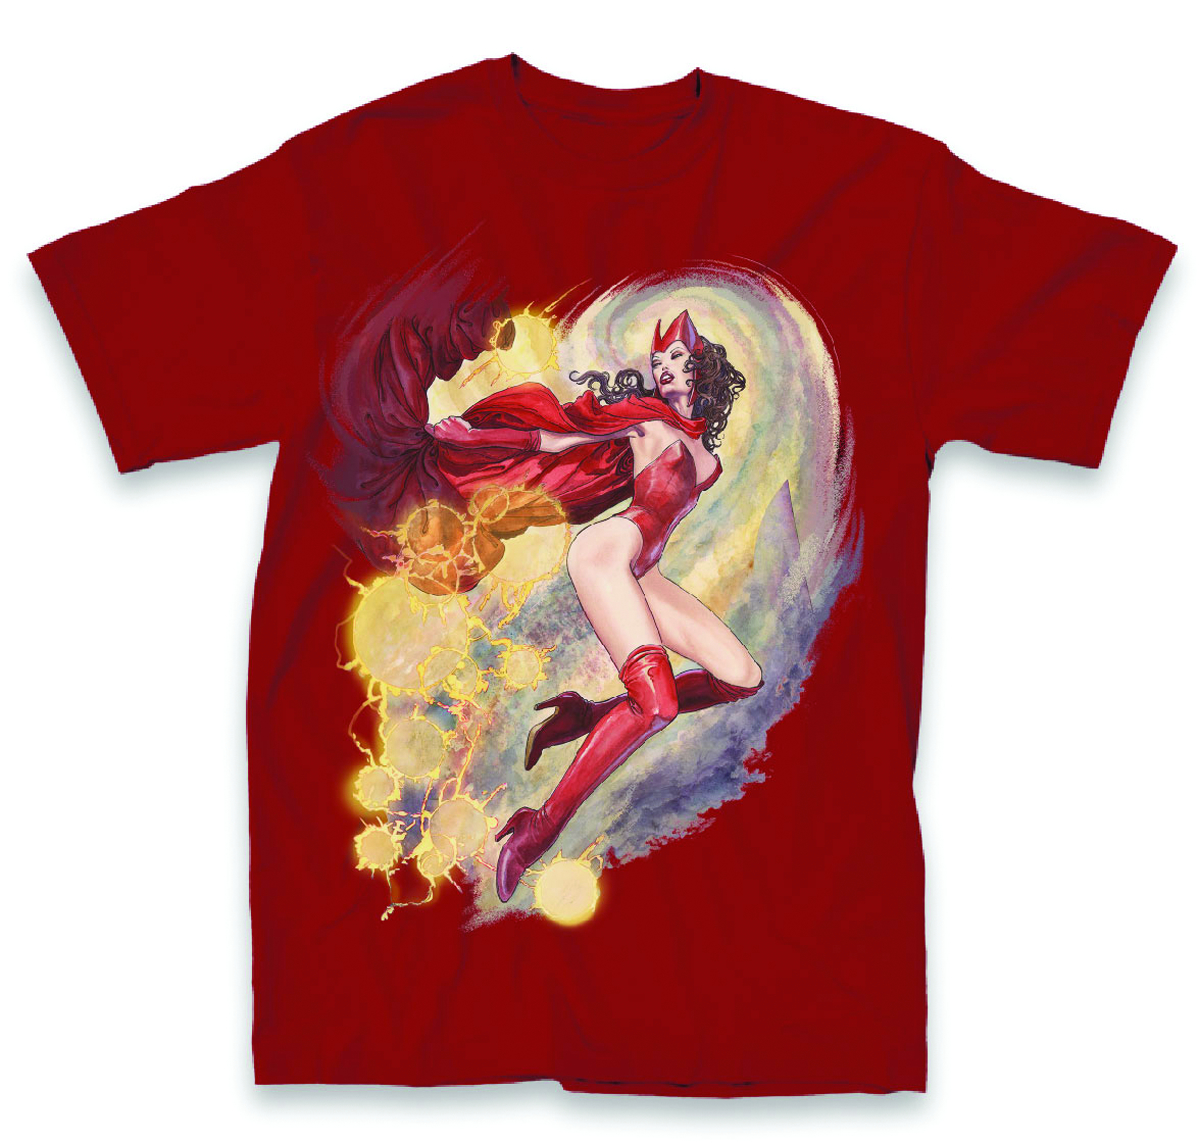 AVENGERS SCARLET WITCH PX CARDINAL T/S MED